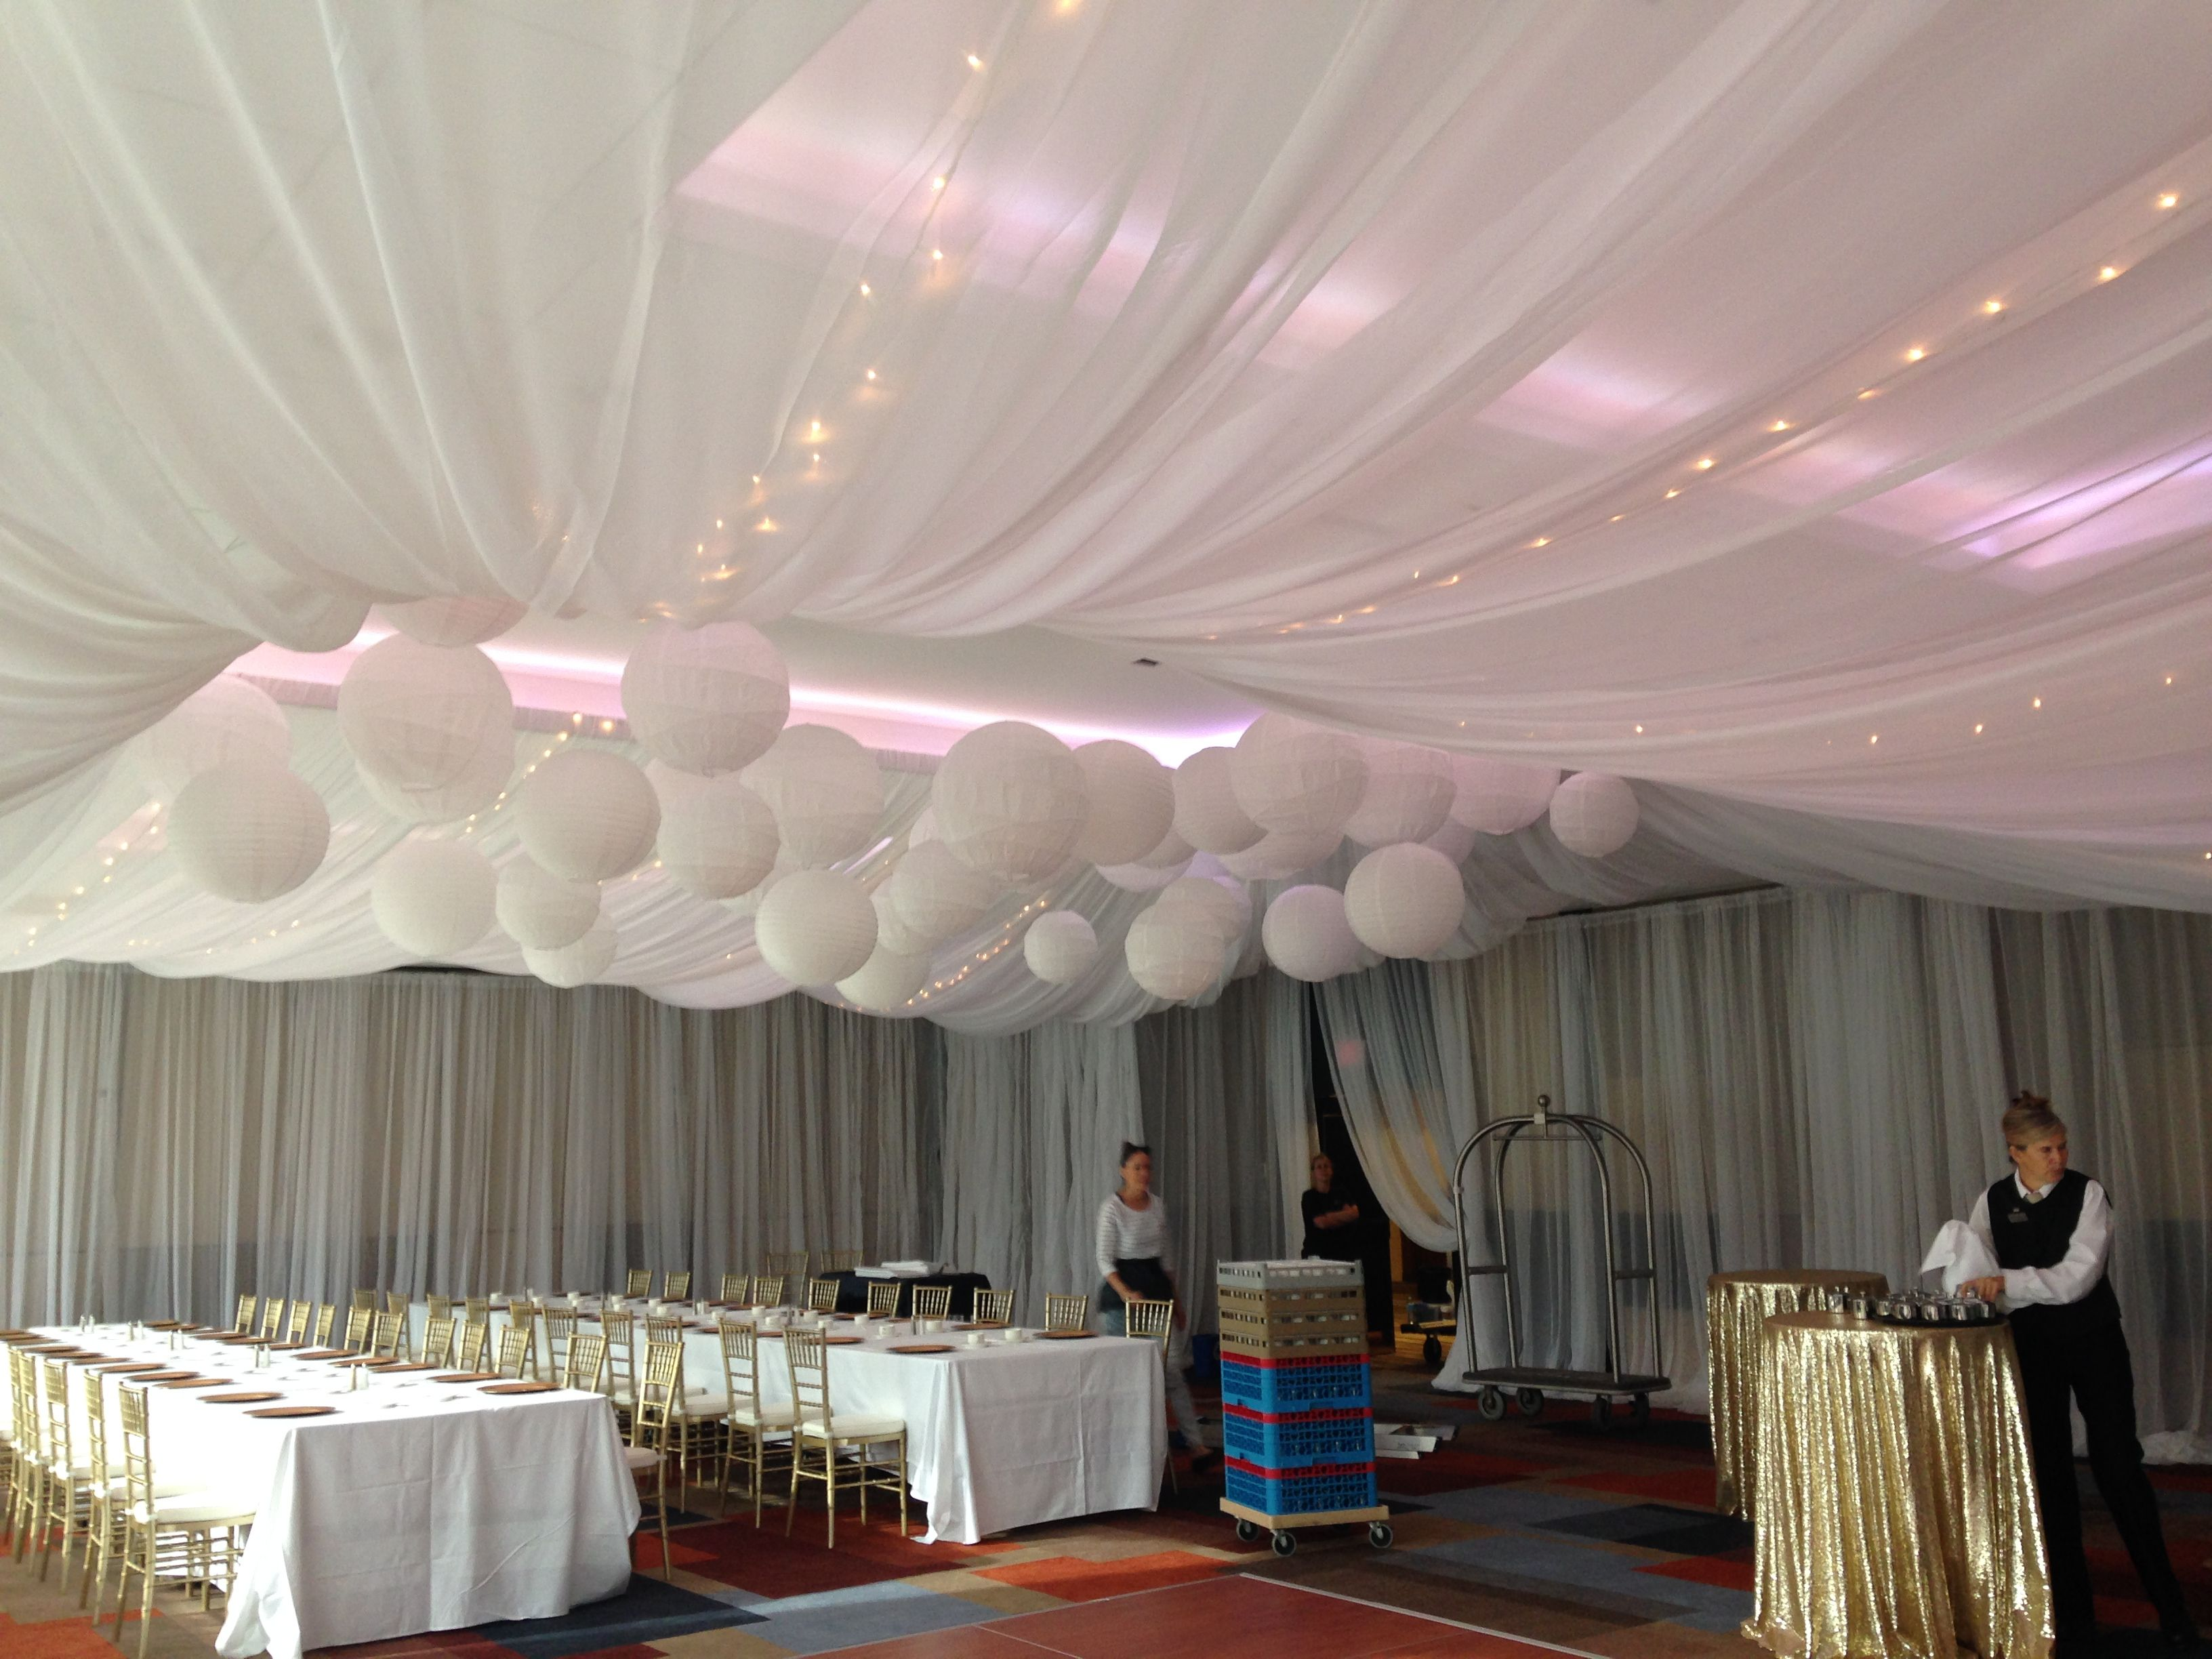 ceilings youtube watch wedding ceiling rental for draping